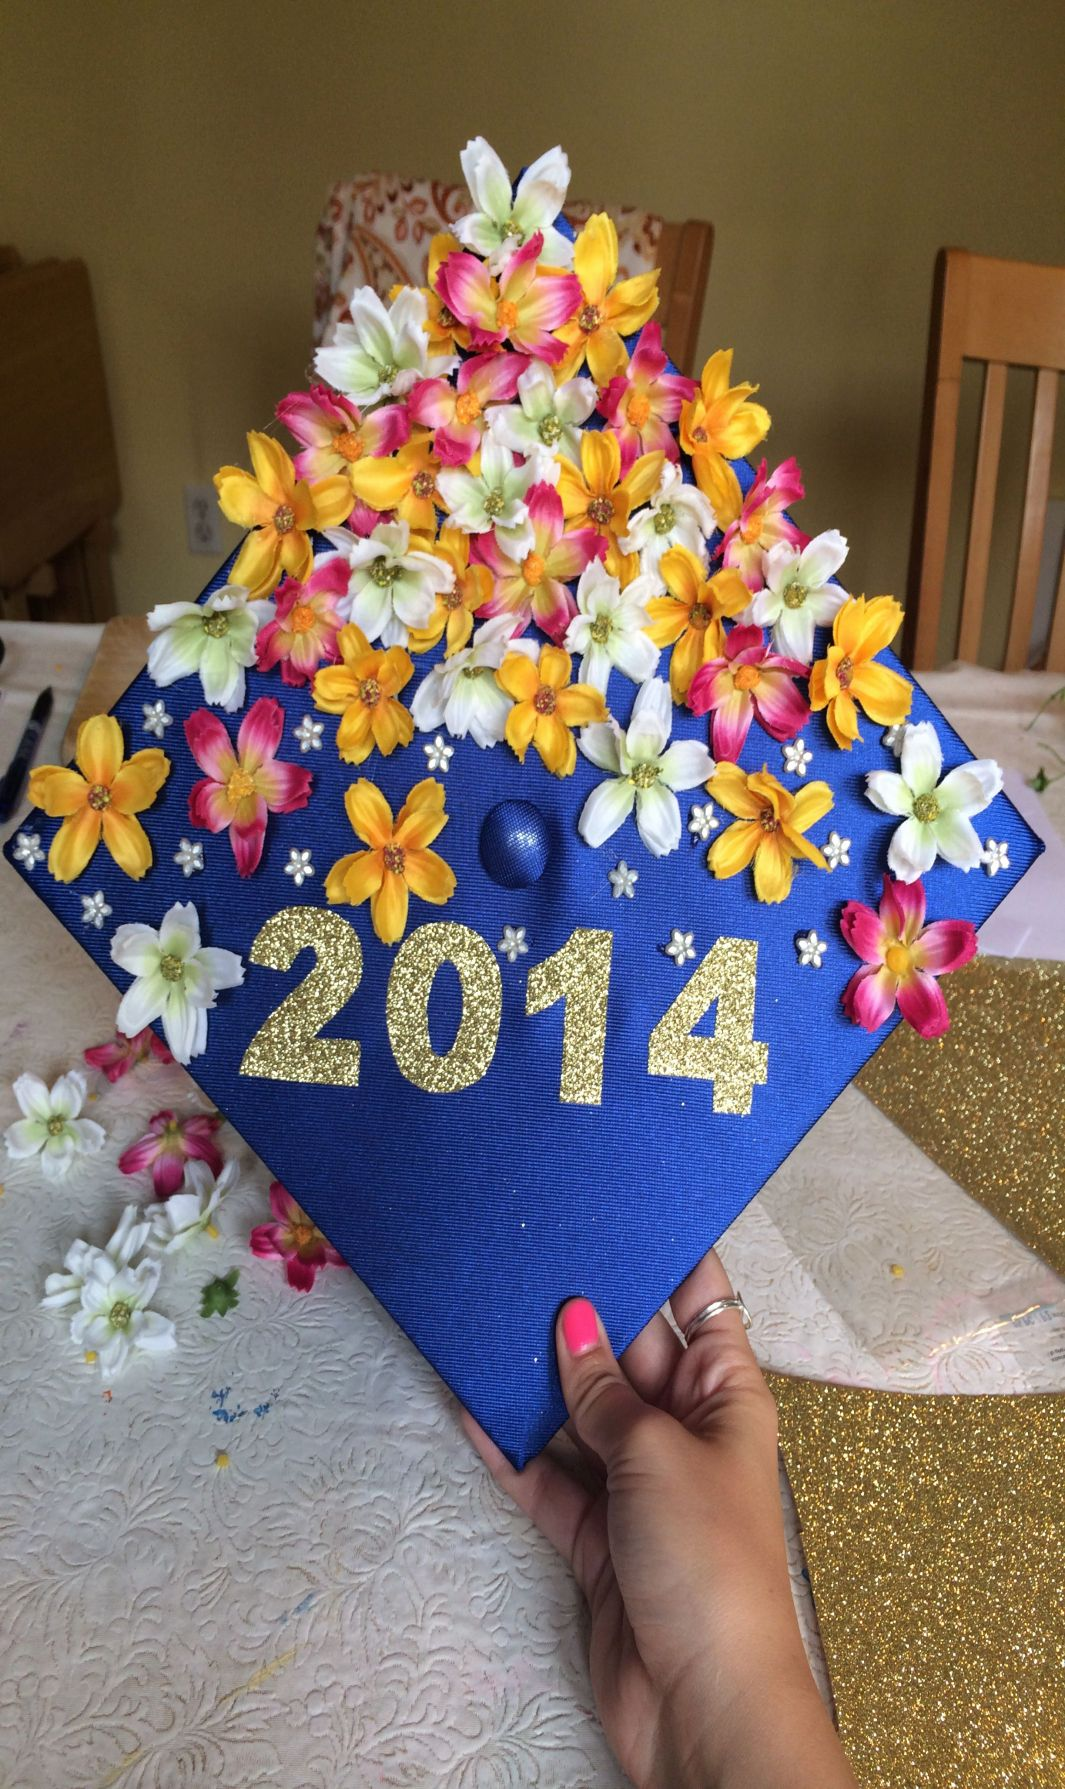 how to decorate graduation cap with flowers